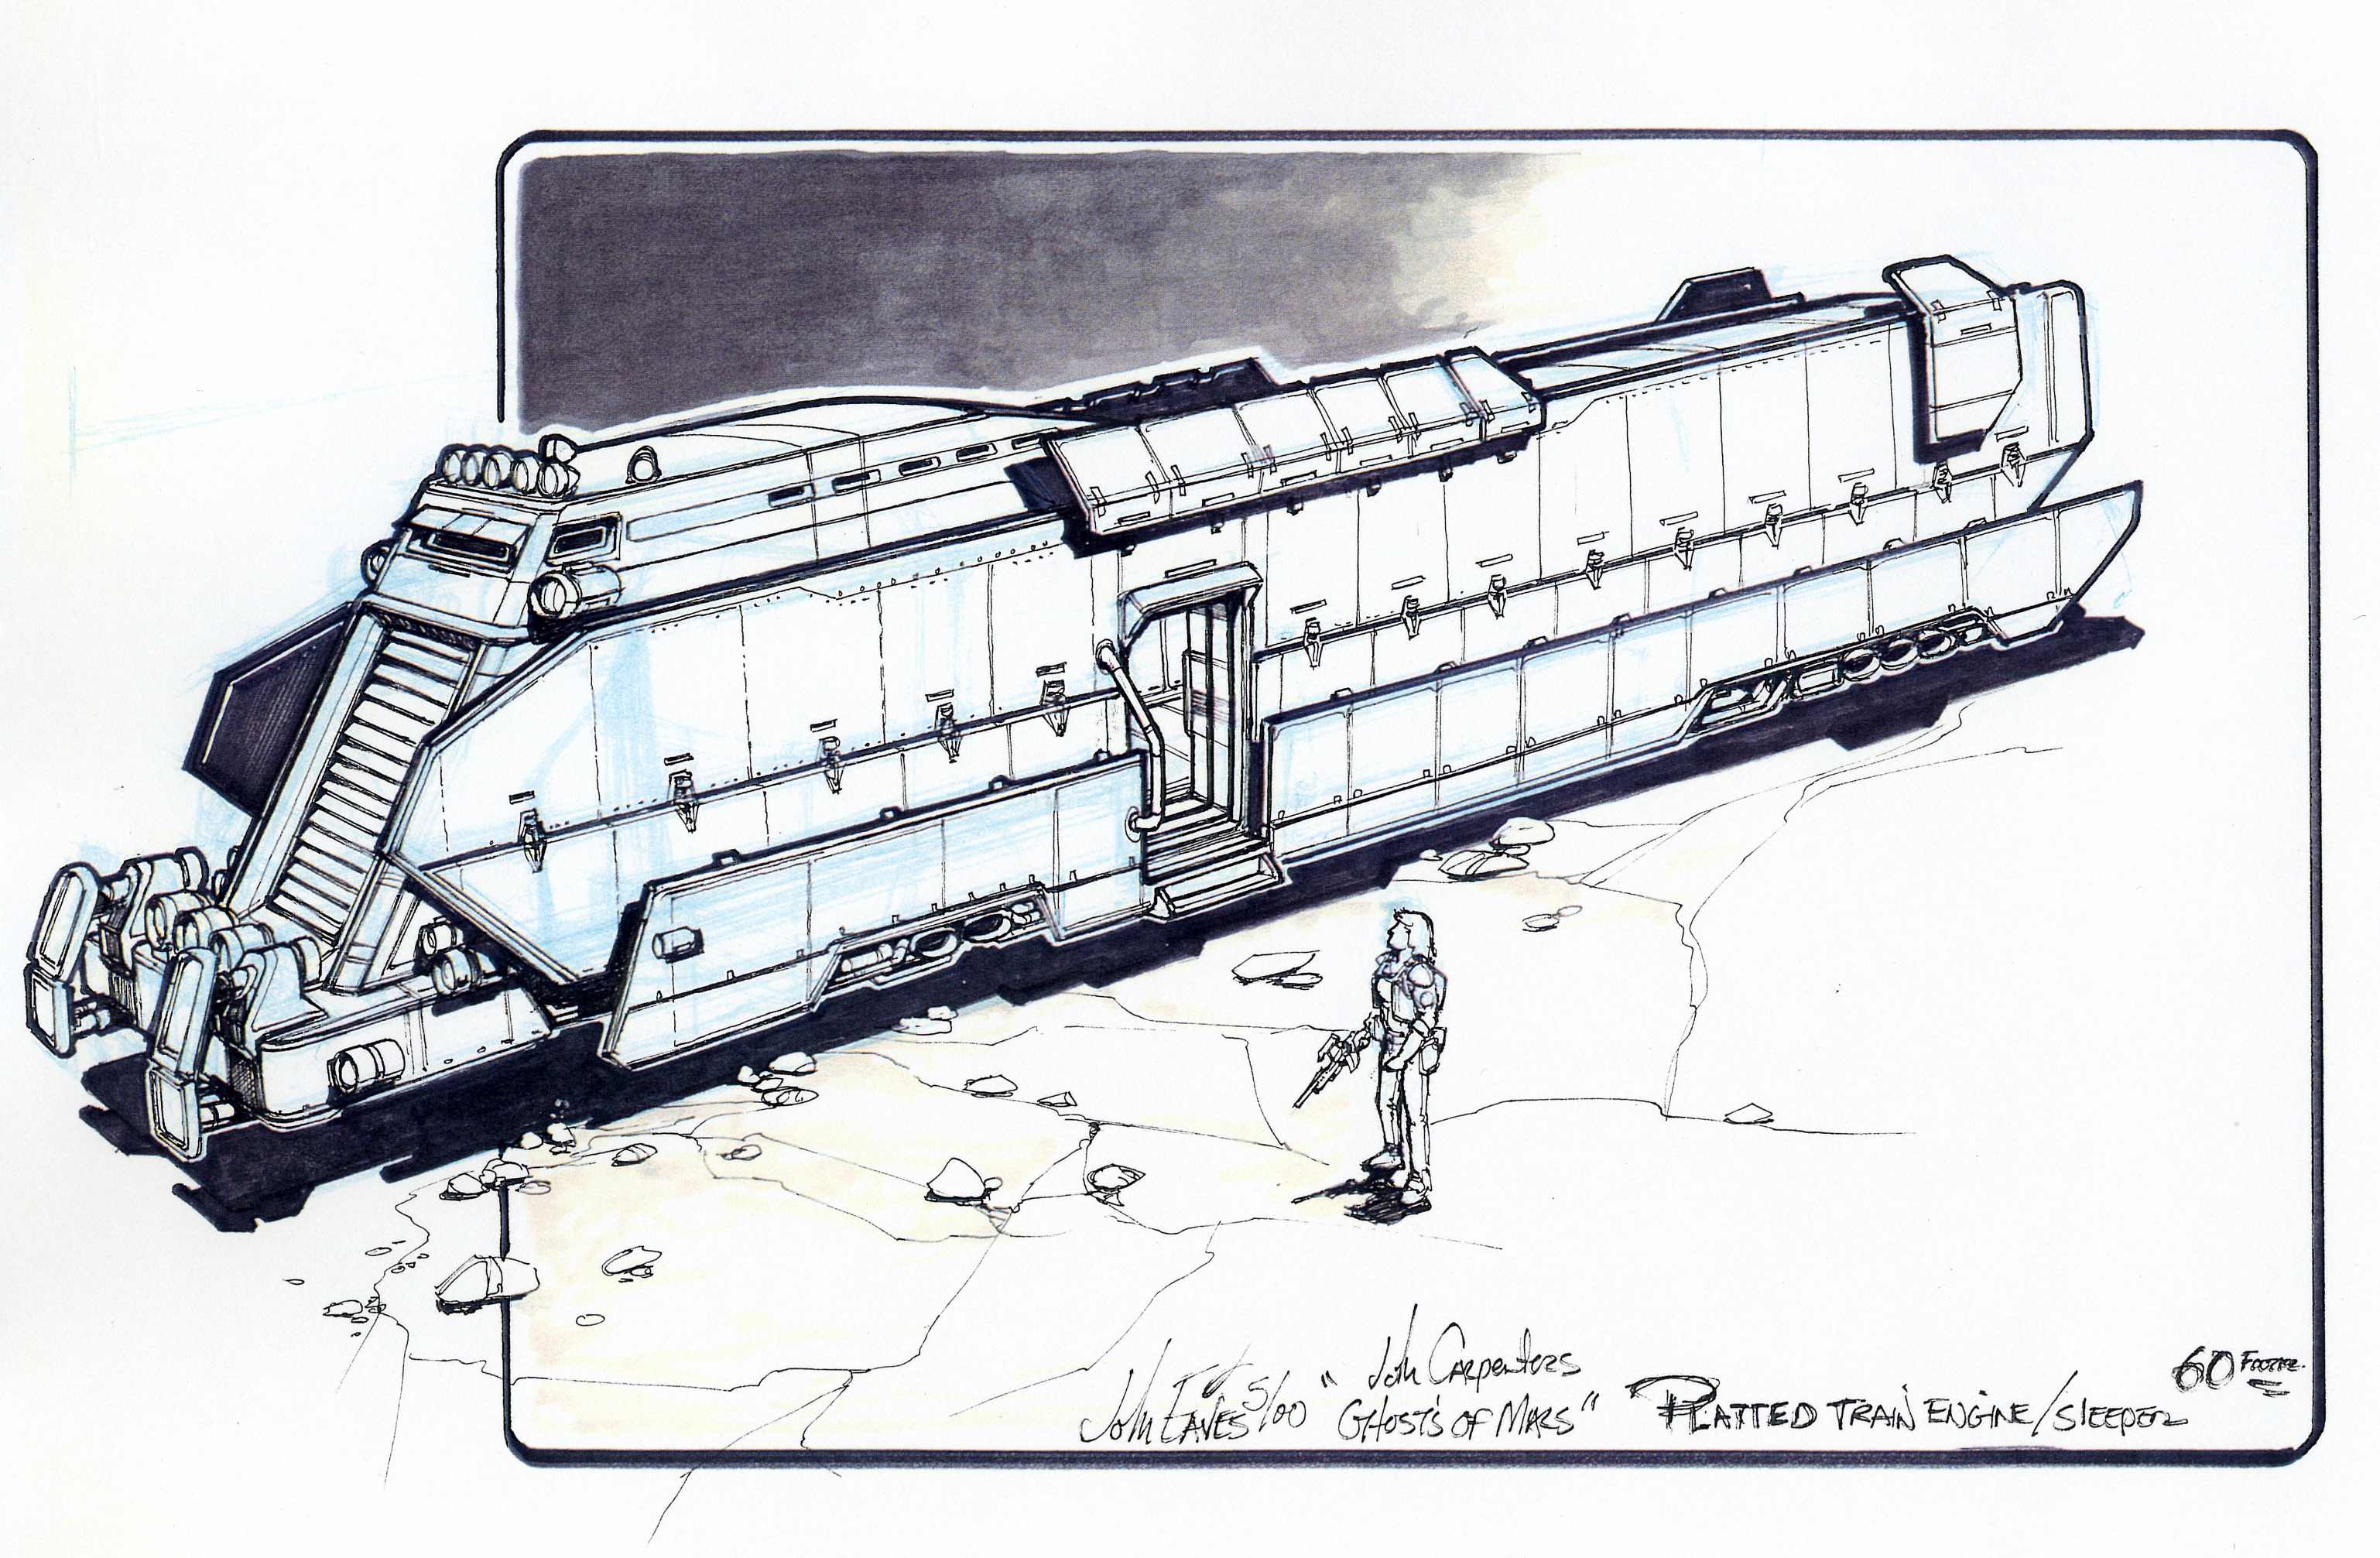 John carpenter's ghosts of mars, the art of part 2 » train art